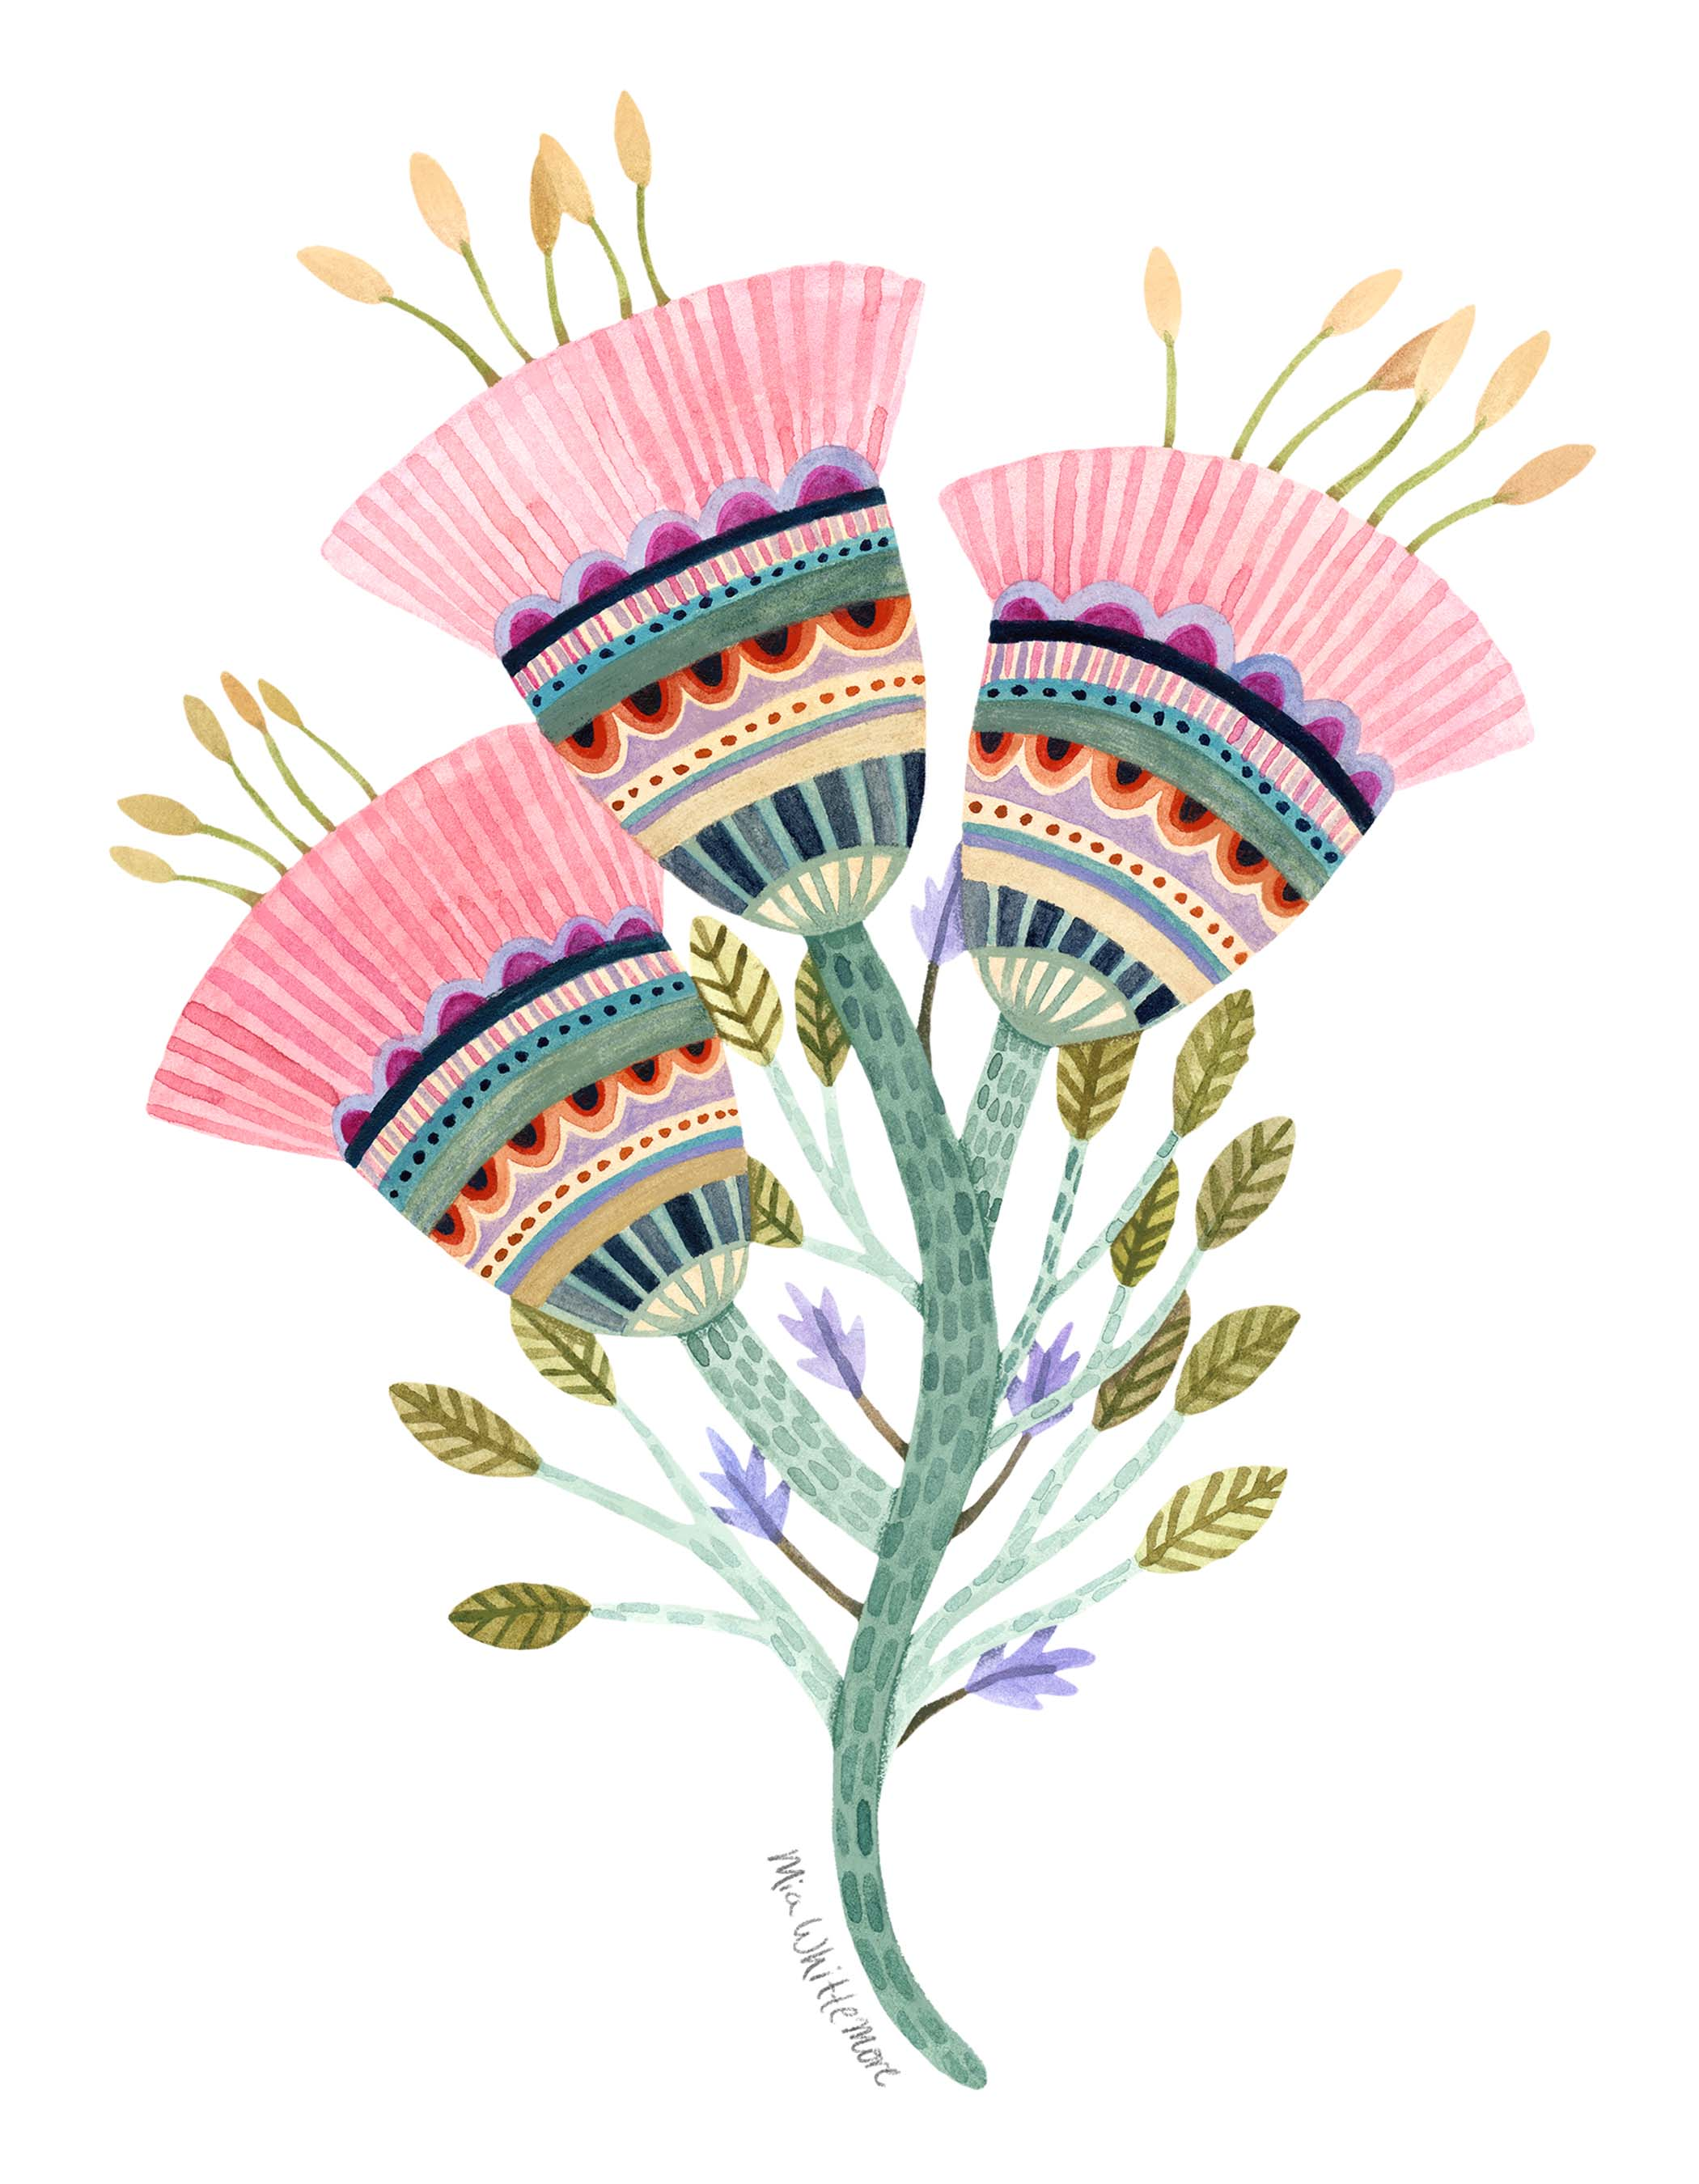 Mia Whittemore_Embroidered Flowers.jpg